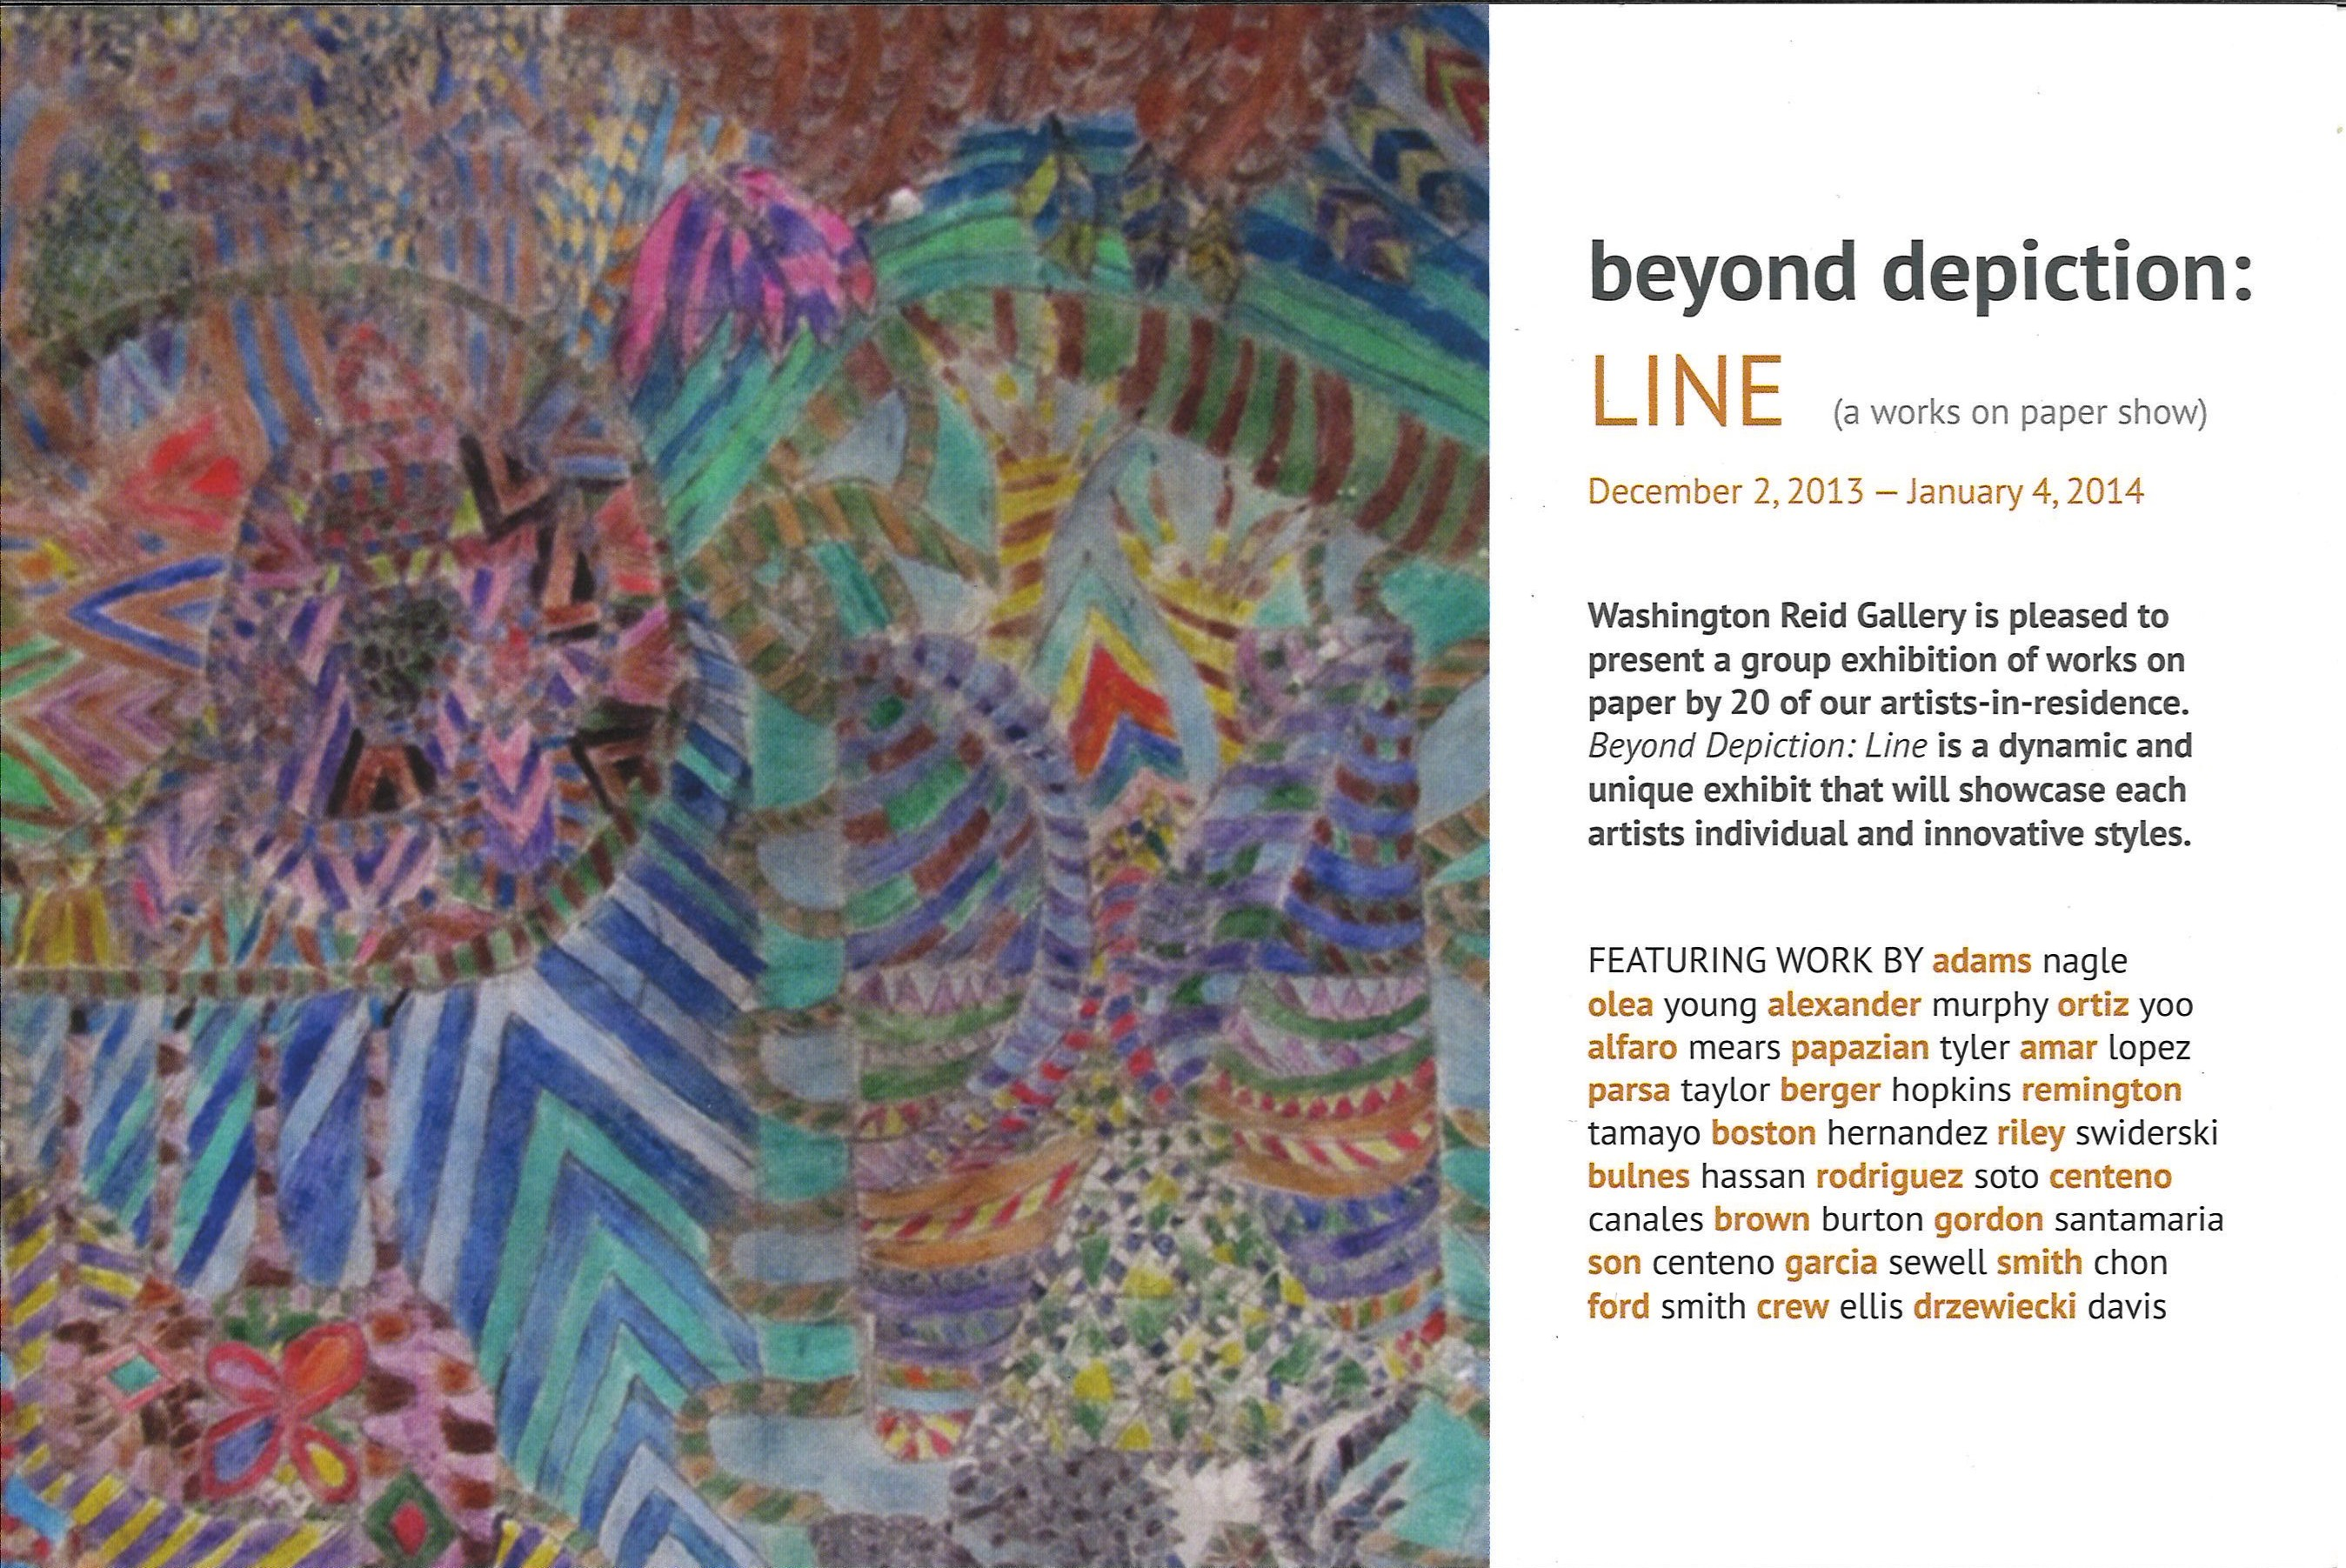 Beyond Depiction: Line (A Works on Paper Show)